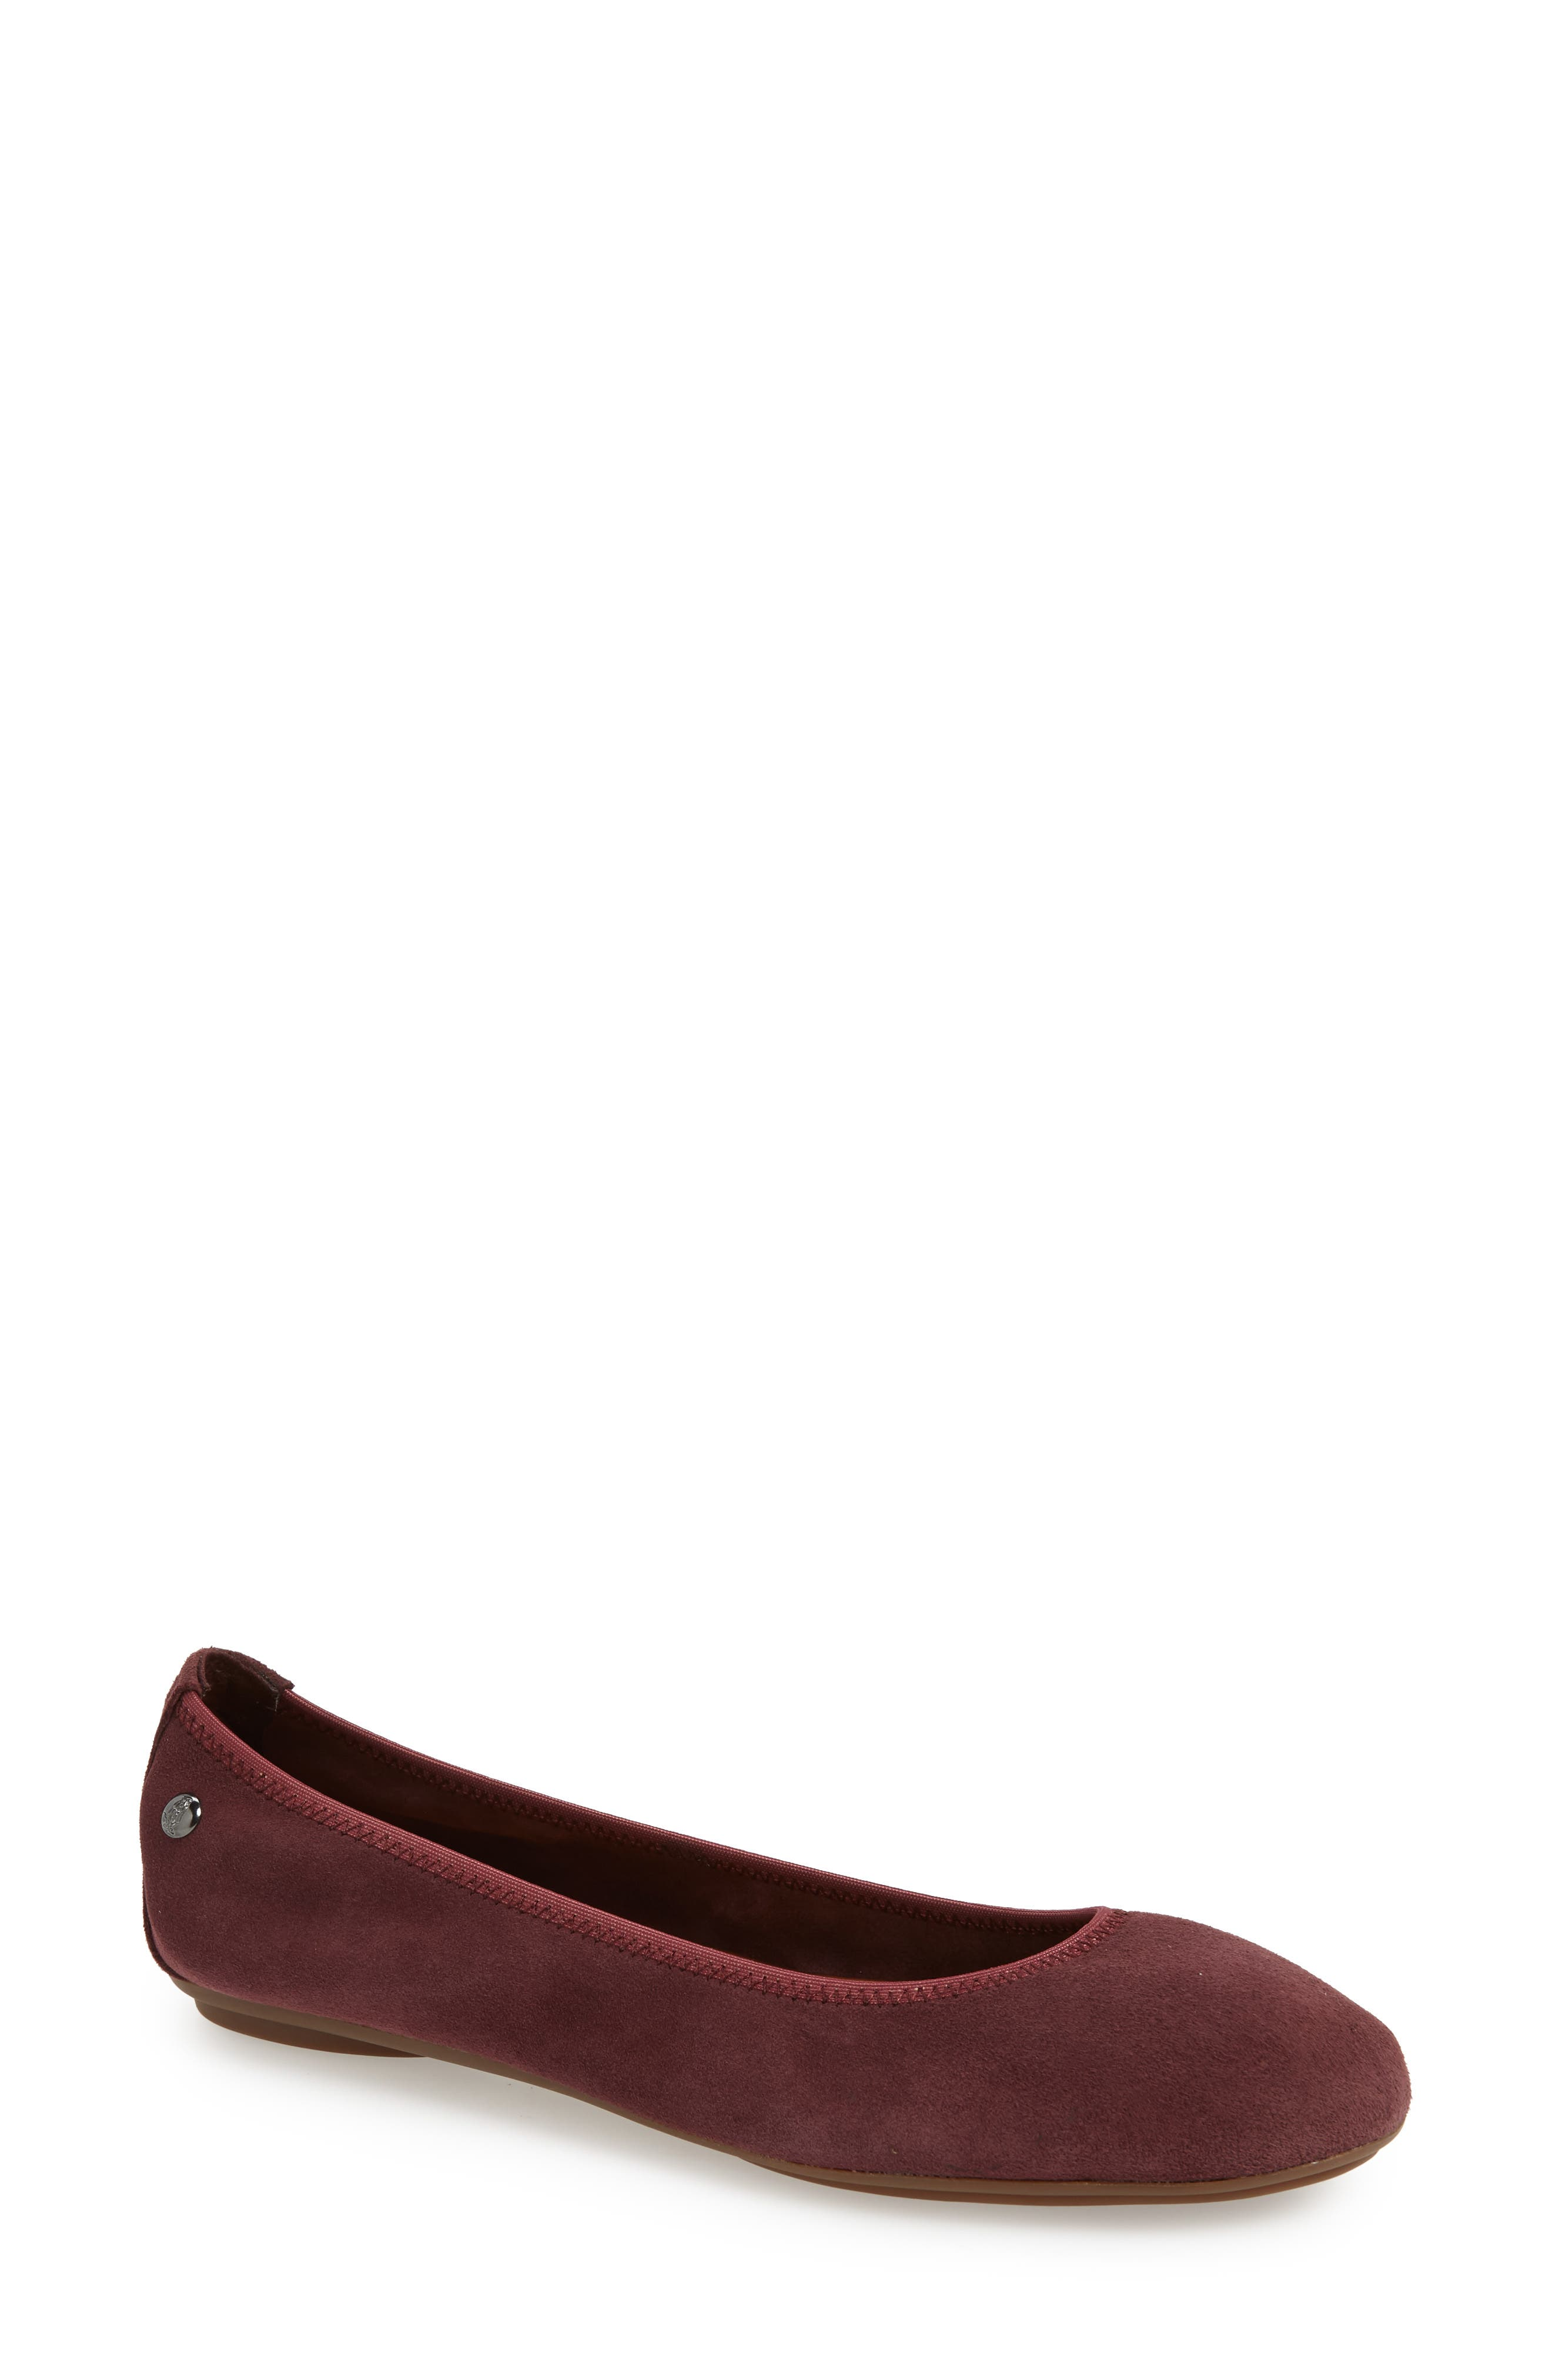 'Chaste' Ballet Flat,                             Main thumbnail 1, color,                             DARK WINE SUEDE